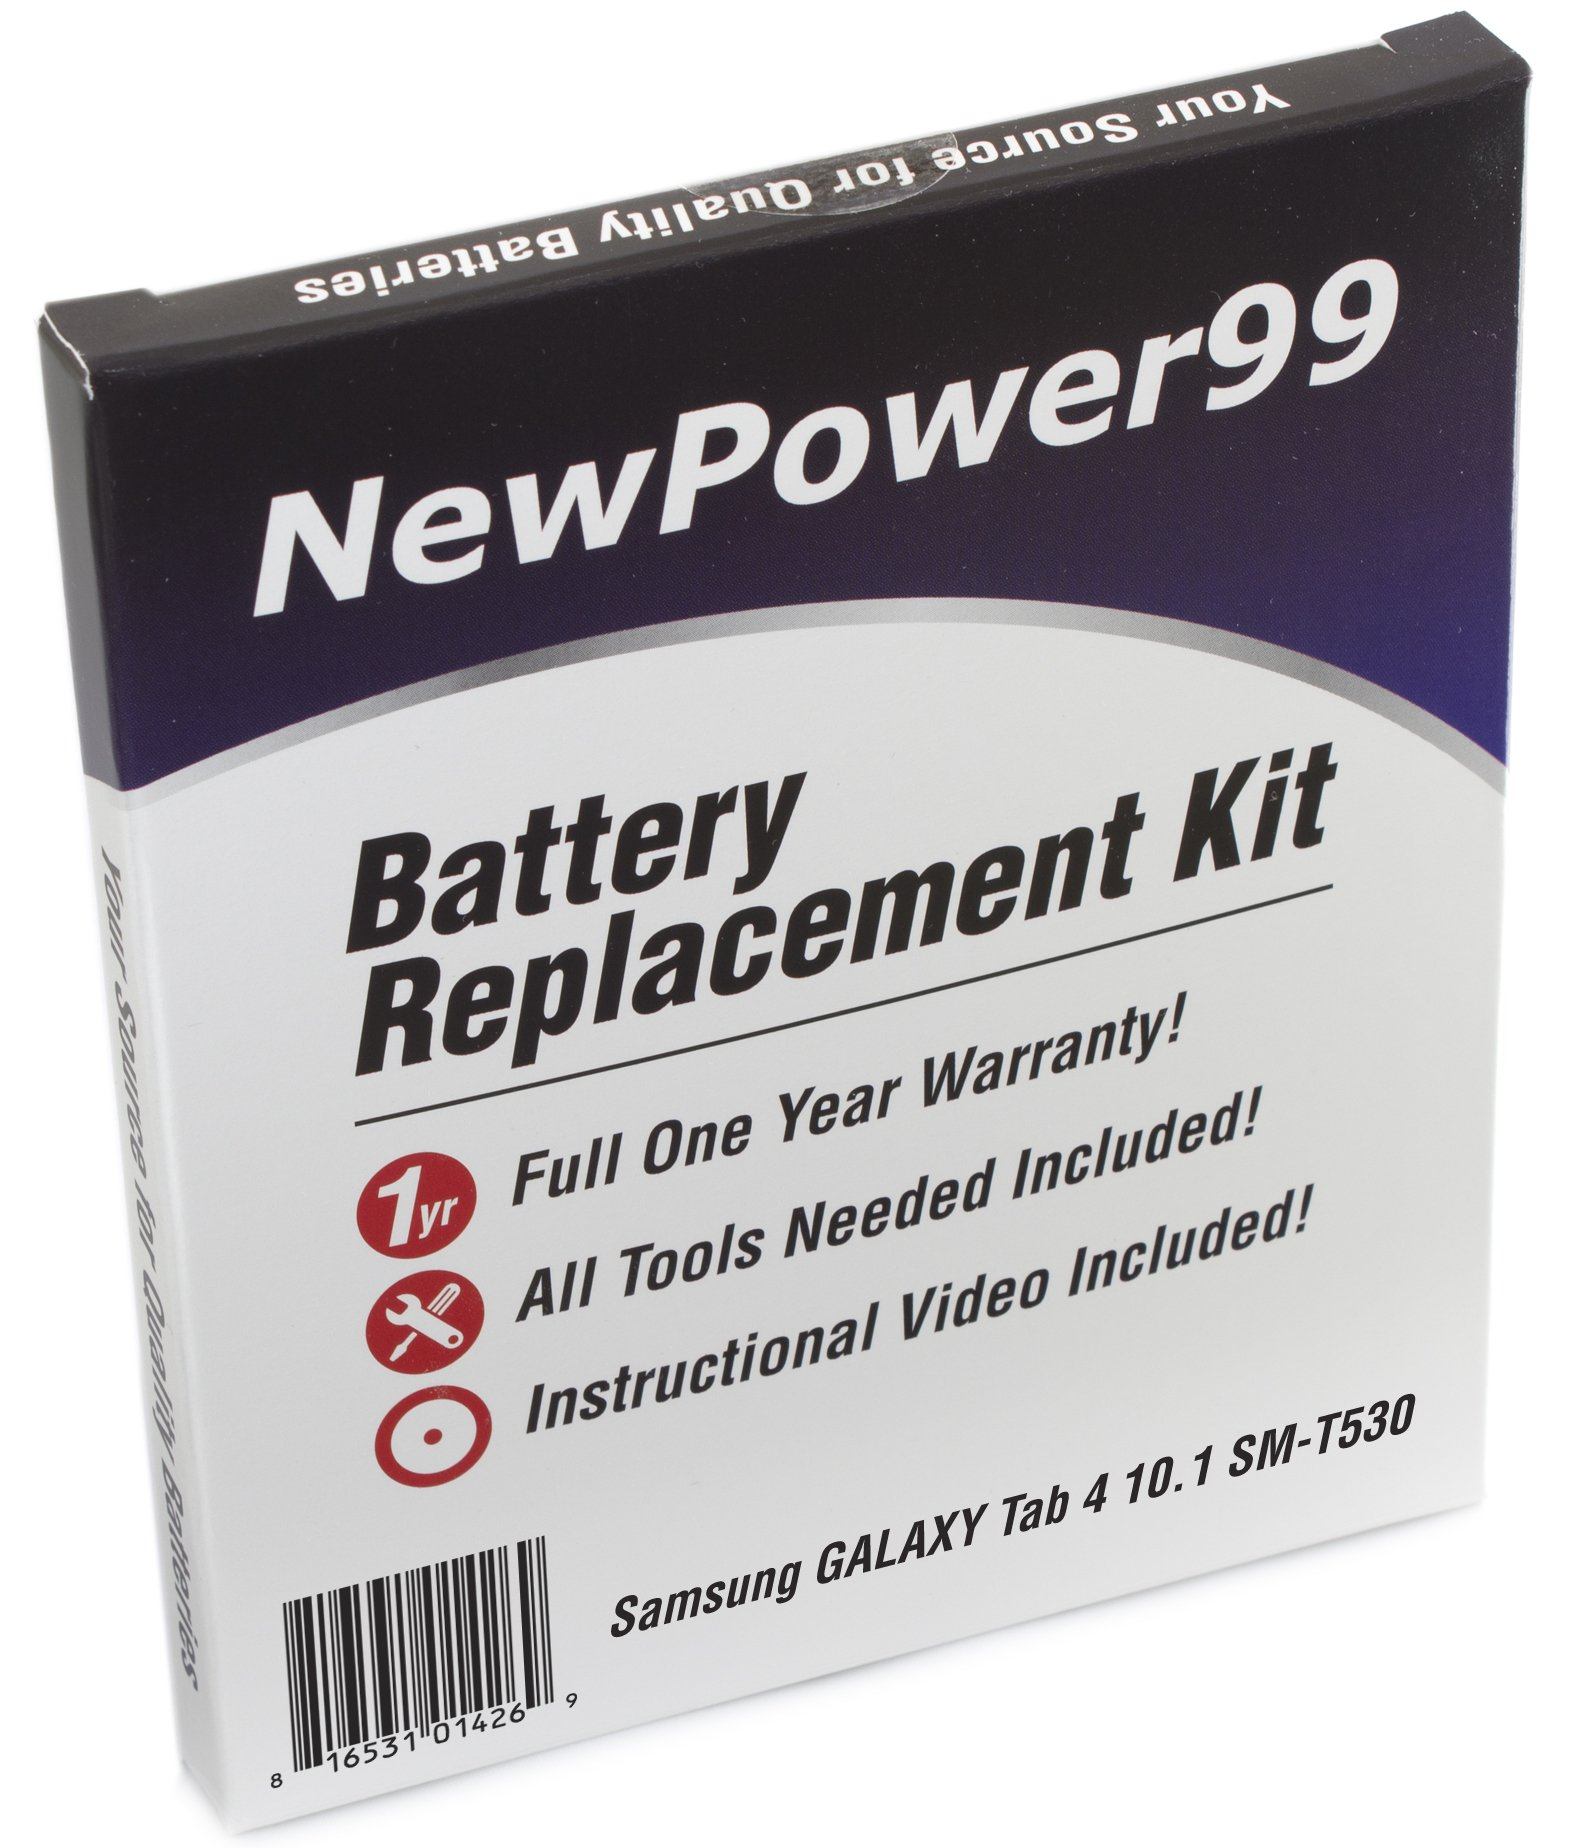 NewPower99 Samsung GALAXY Tab 4 10.1 SM-T530 Battery Replacement Kit with Video Installation DVD, Installation Tools, and Extended Life Battery